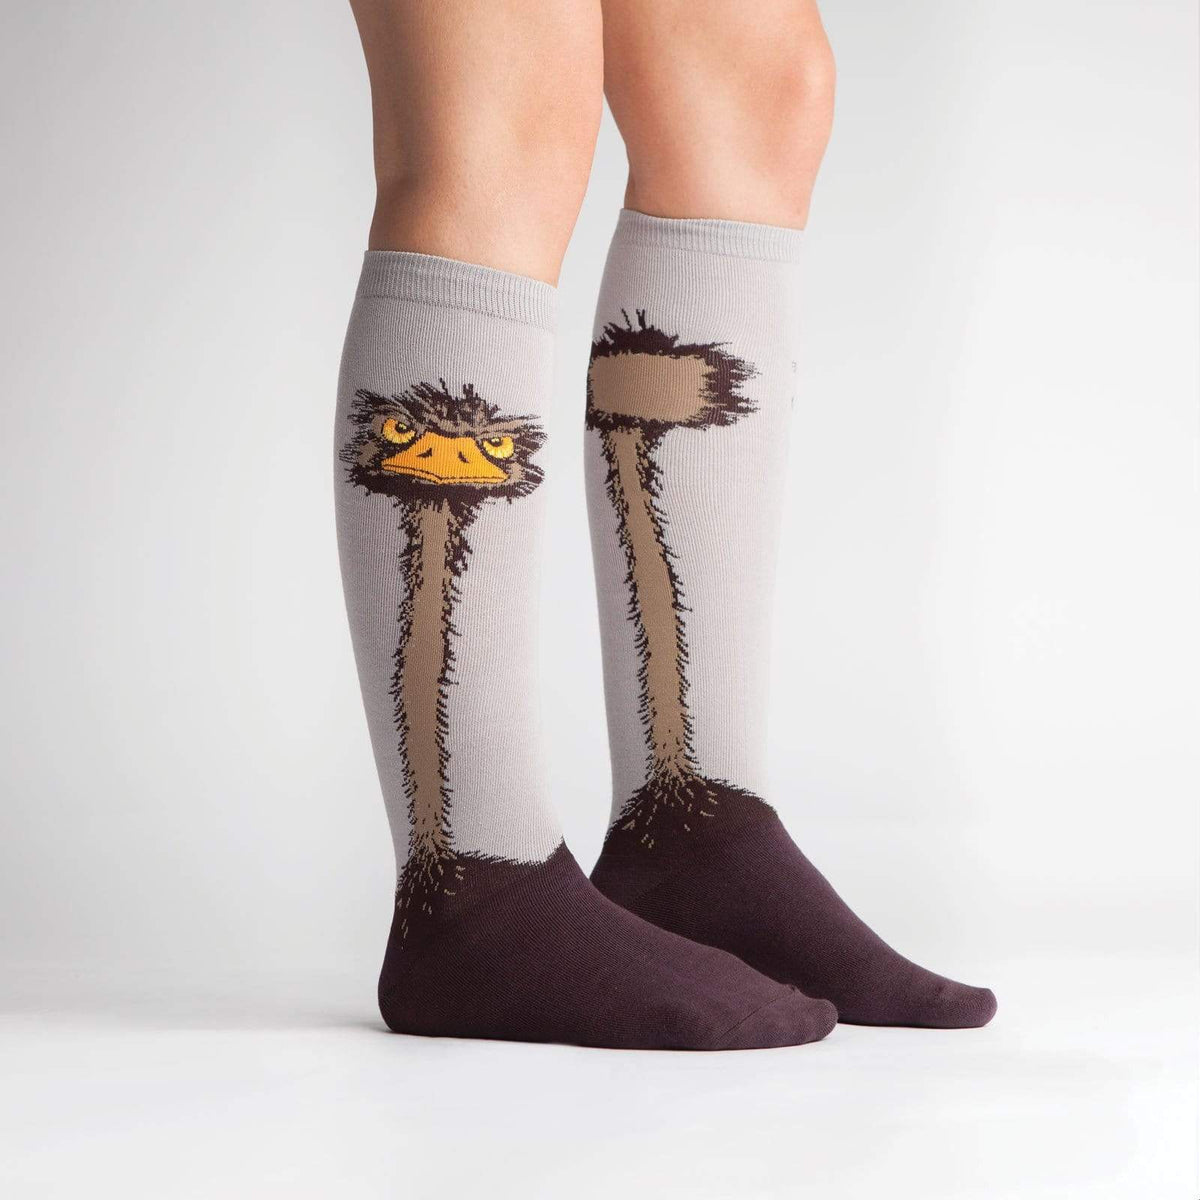 Ostrich Knee High Socks - model2